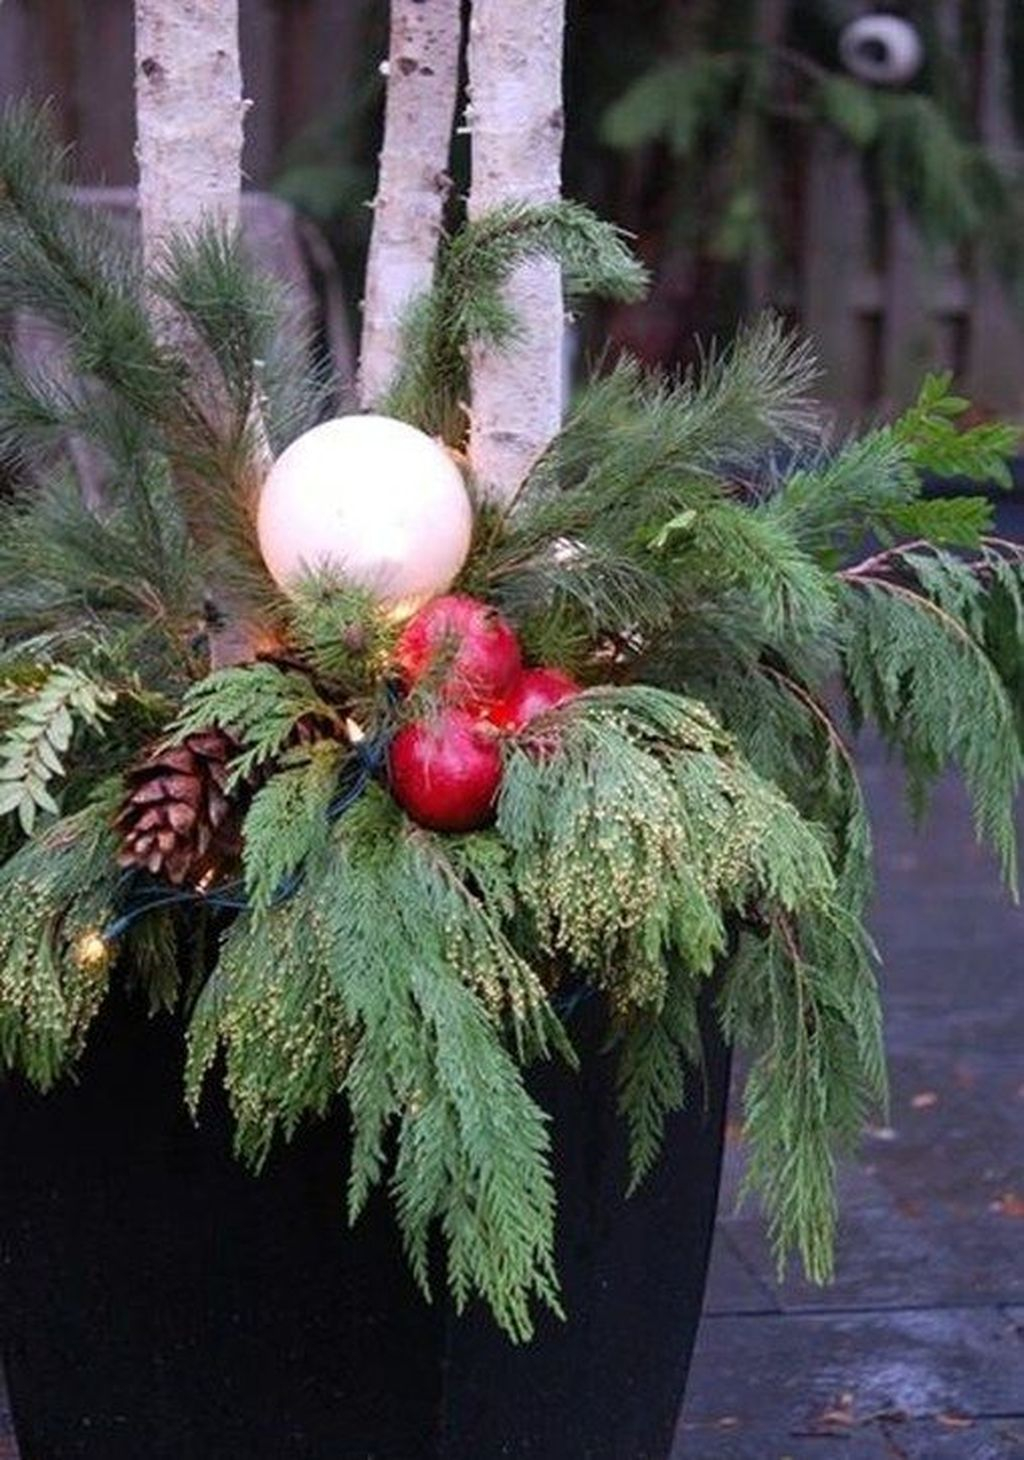 Marvelous Outdoor Holiday Planter Ideas To Beauty Porch Décor 36